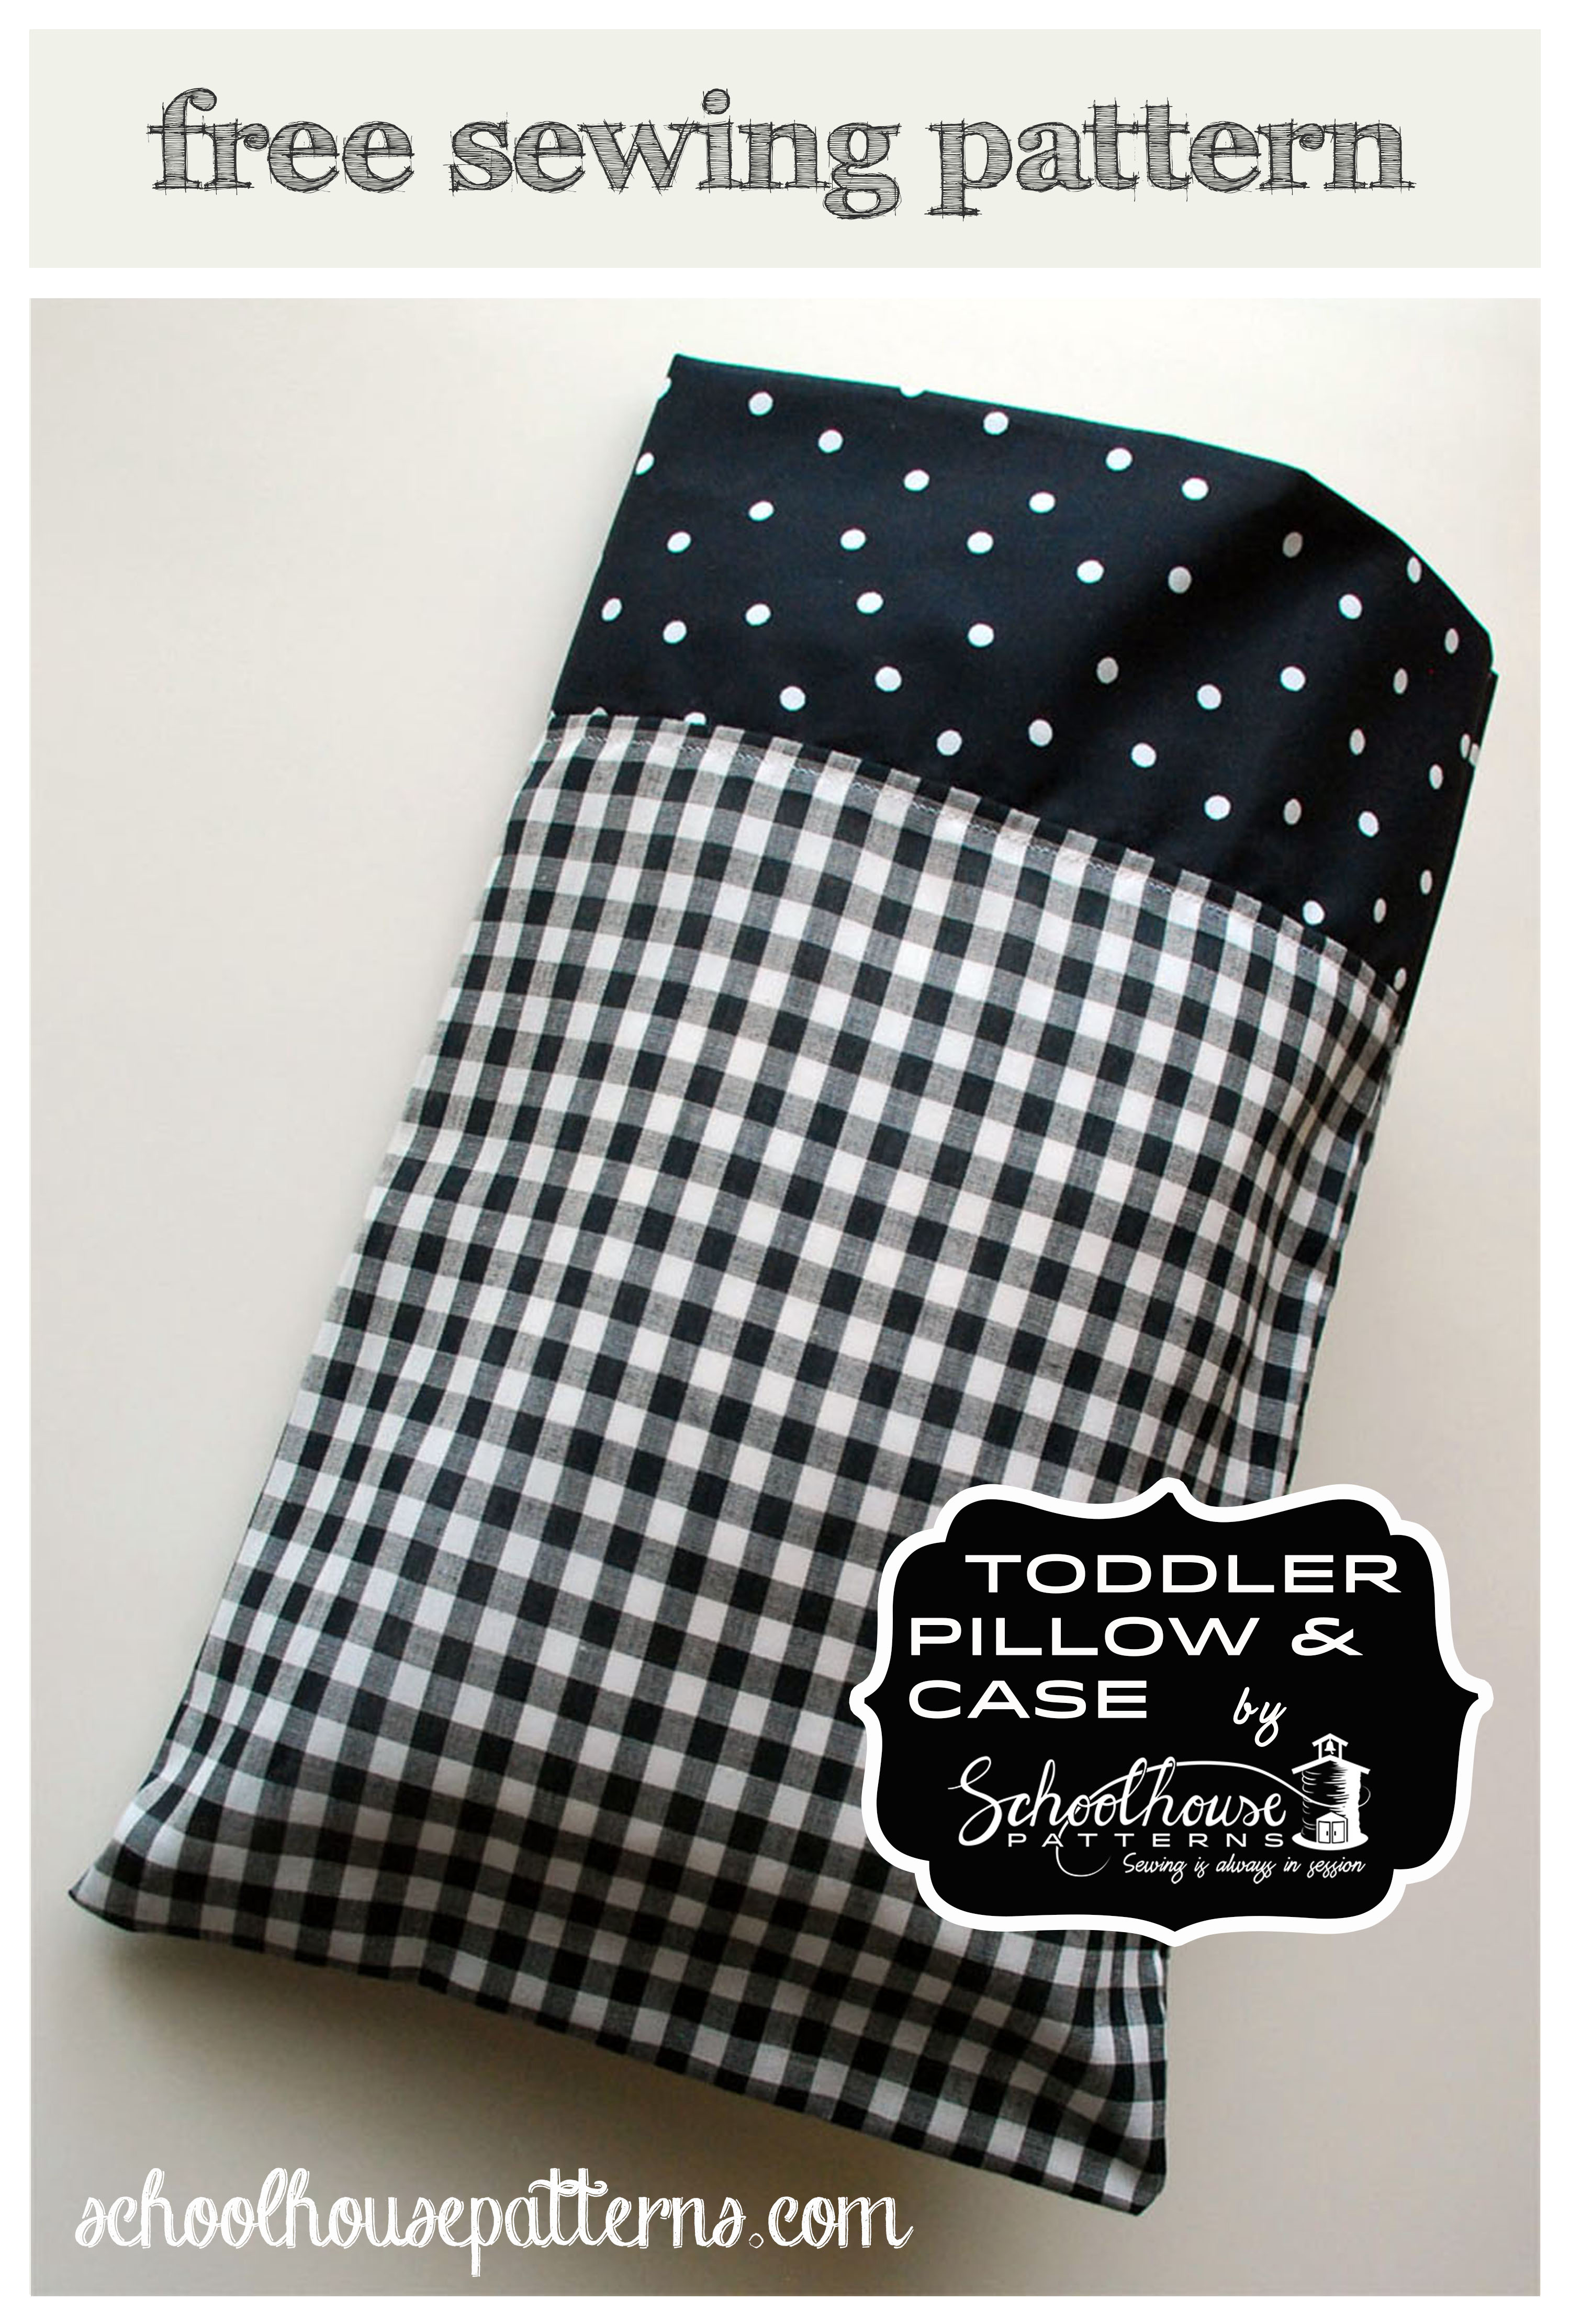 The Toddler Pillow Amp Case Schoolhouse Patterns